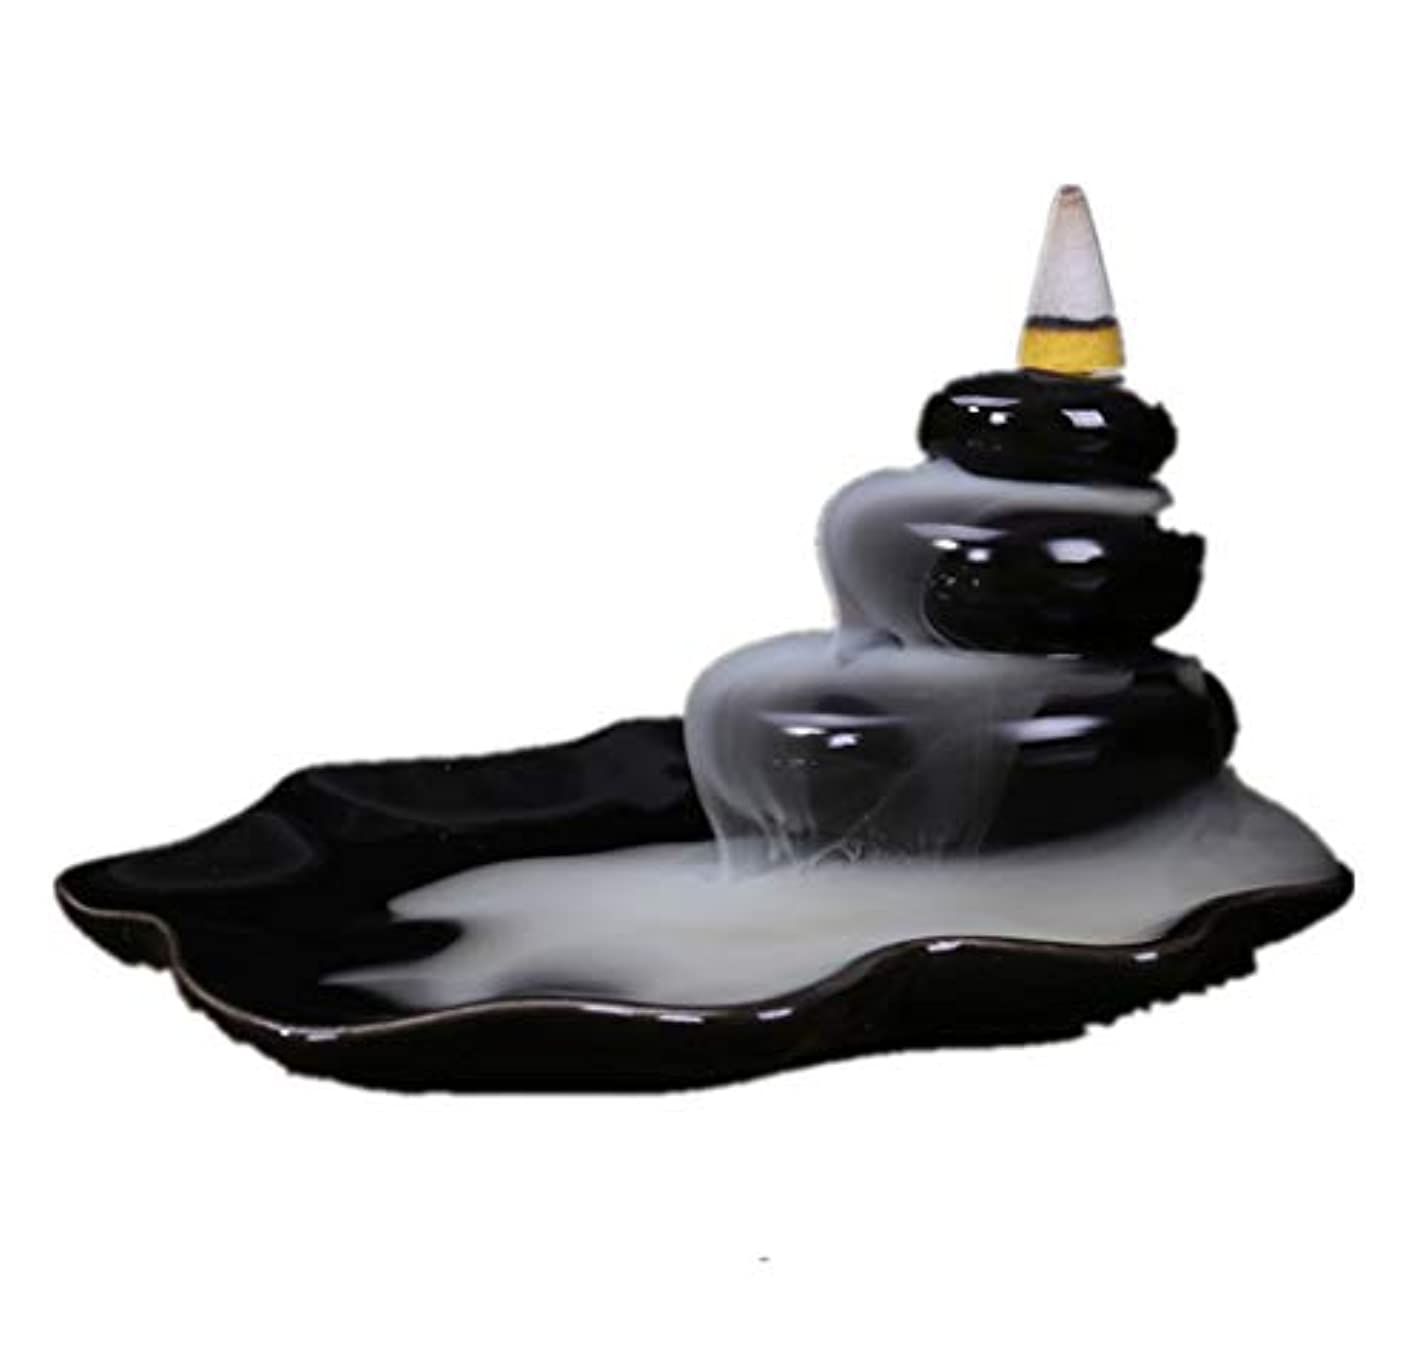 省略ペレグリネーション胃XPPXPP Backflow Incense Burner, Household Ceramic Returning Cone-shaped Candlestick Burner